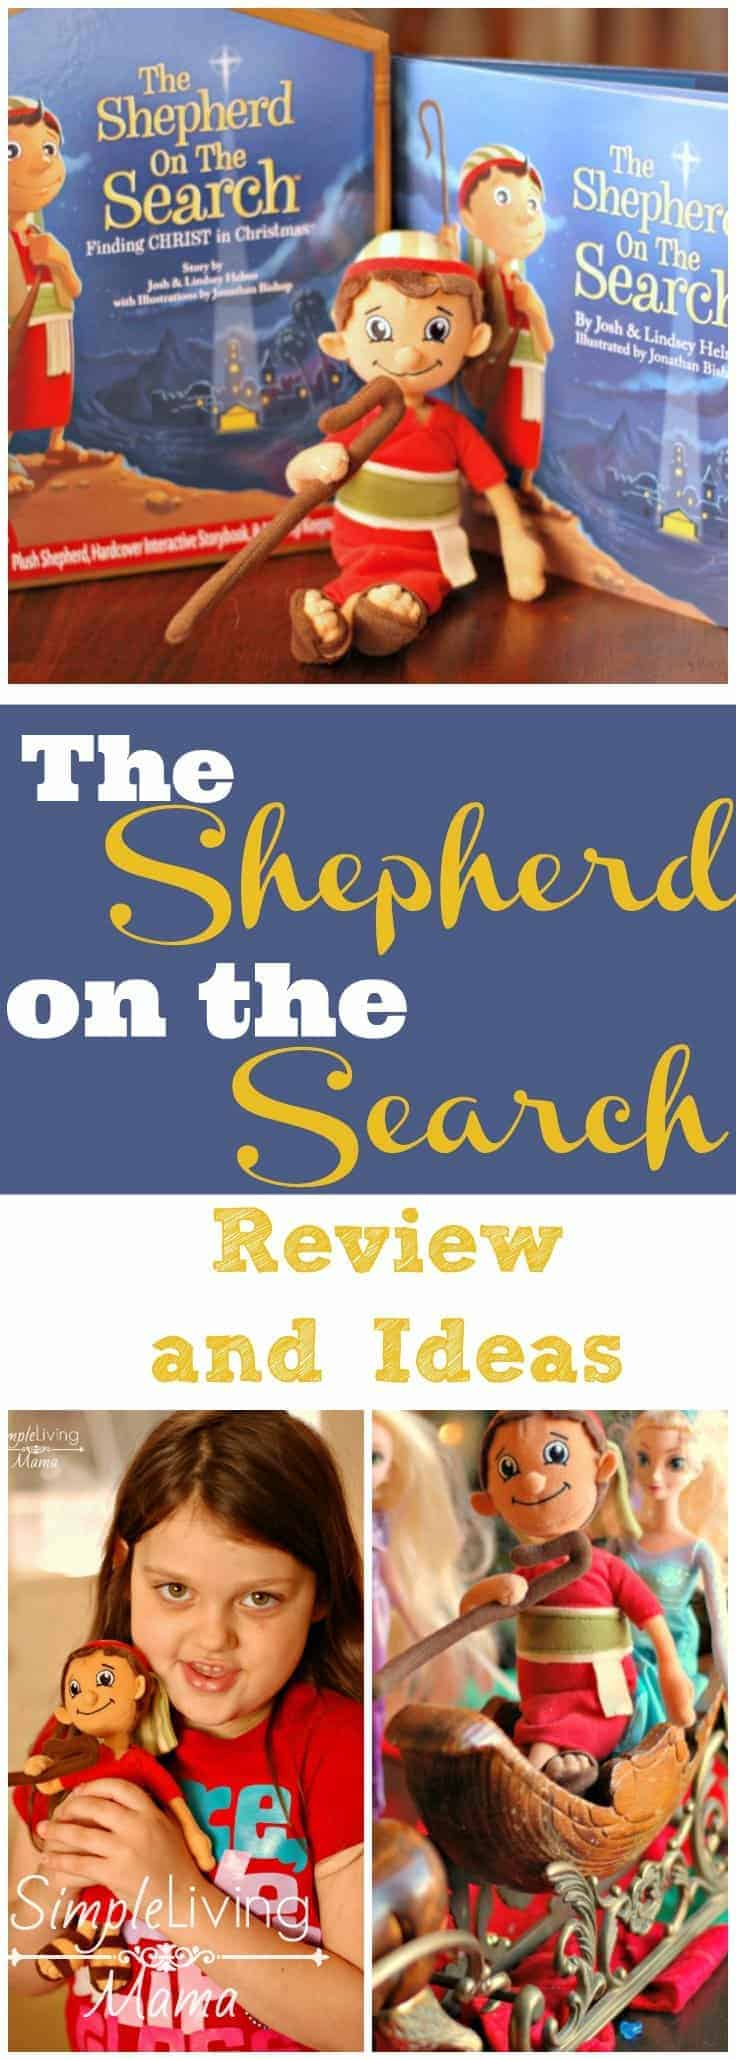 Have you heard of the Shepherd on the Search? Keep Christ the center of Christmas and have fun hiding and finding the shepherd every day of Advent. Check out this review and ideas for bringing the shepherd to life in your home.